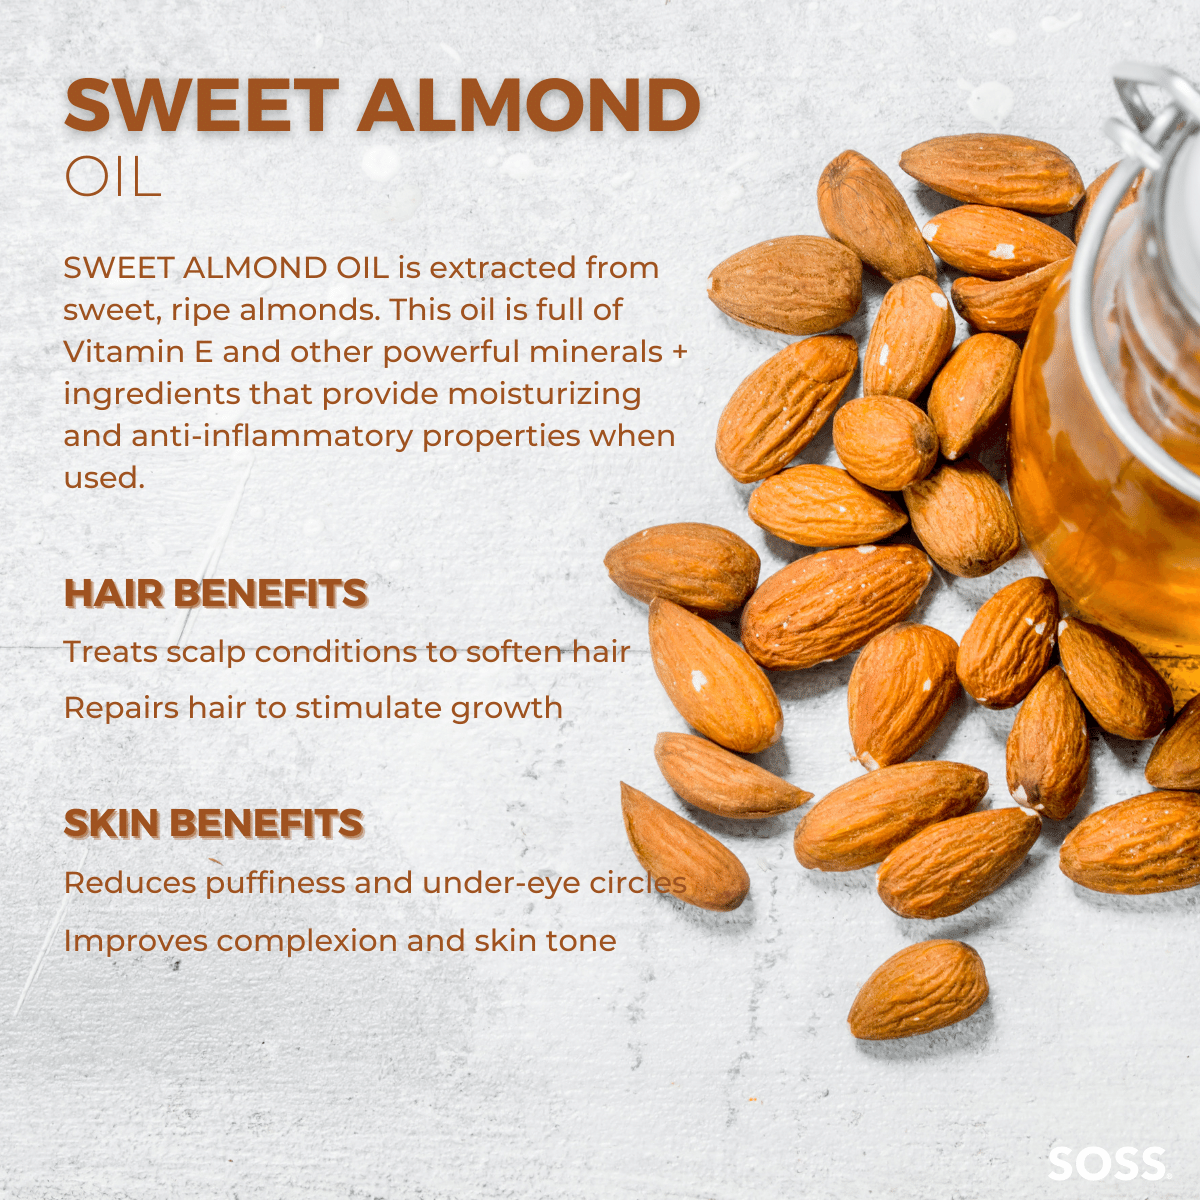 Sweet Almond Oil is used to moisturize hair and nourish skin.